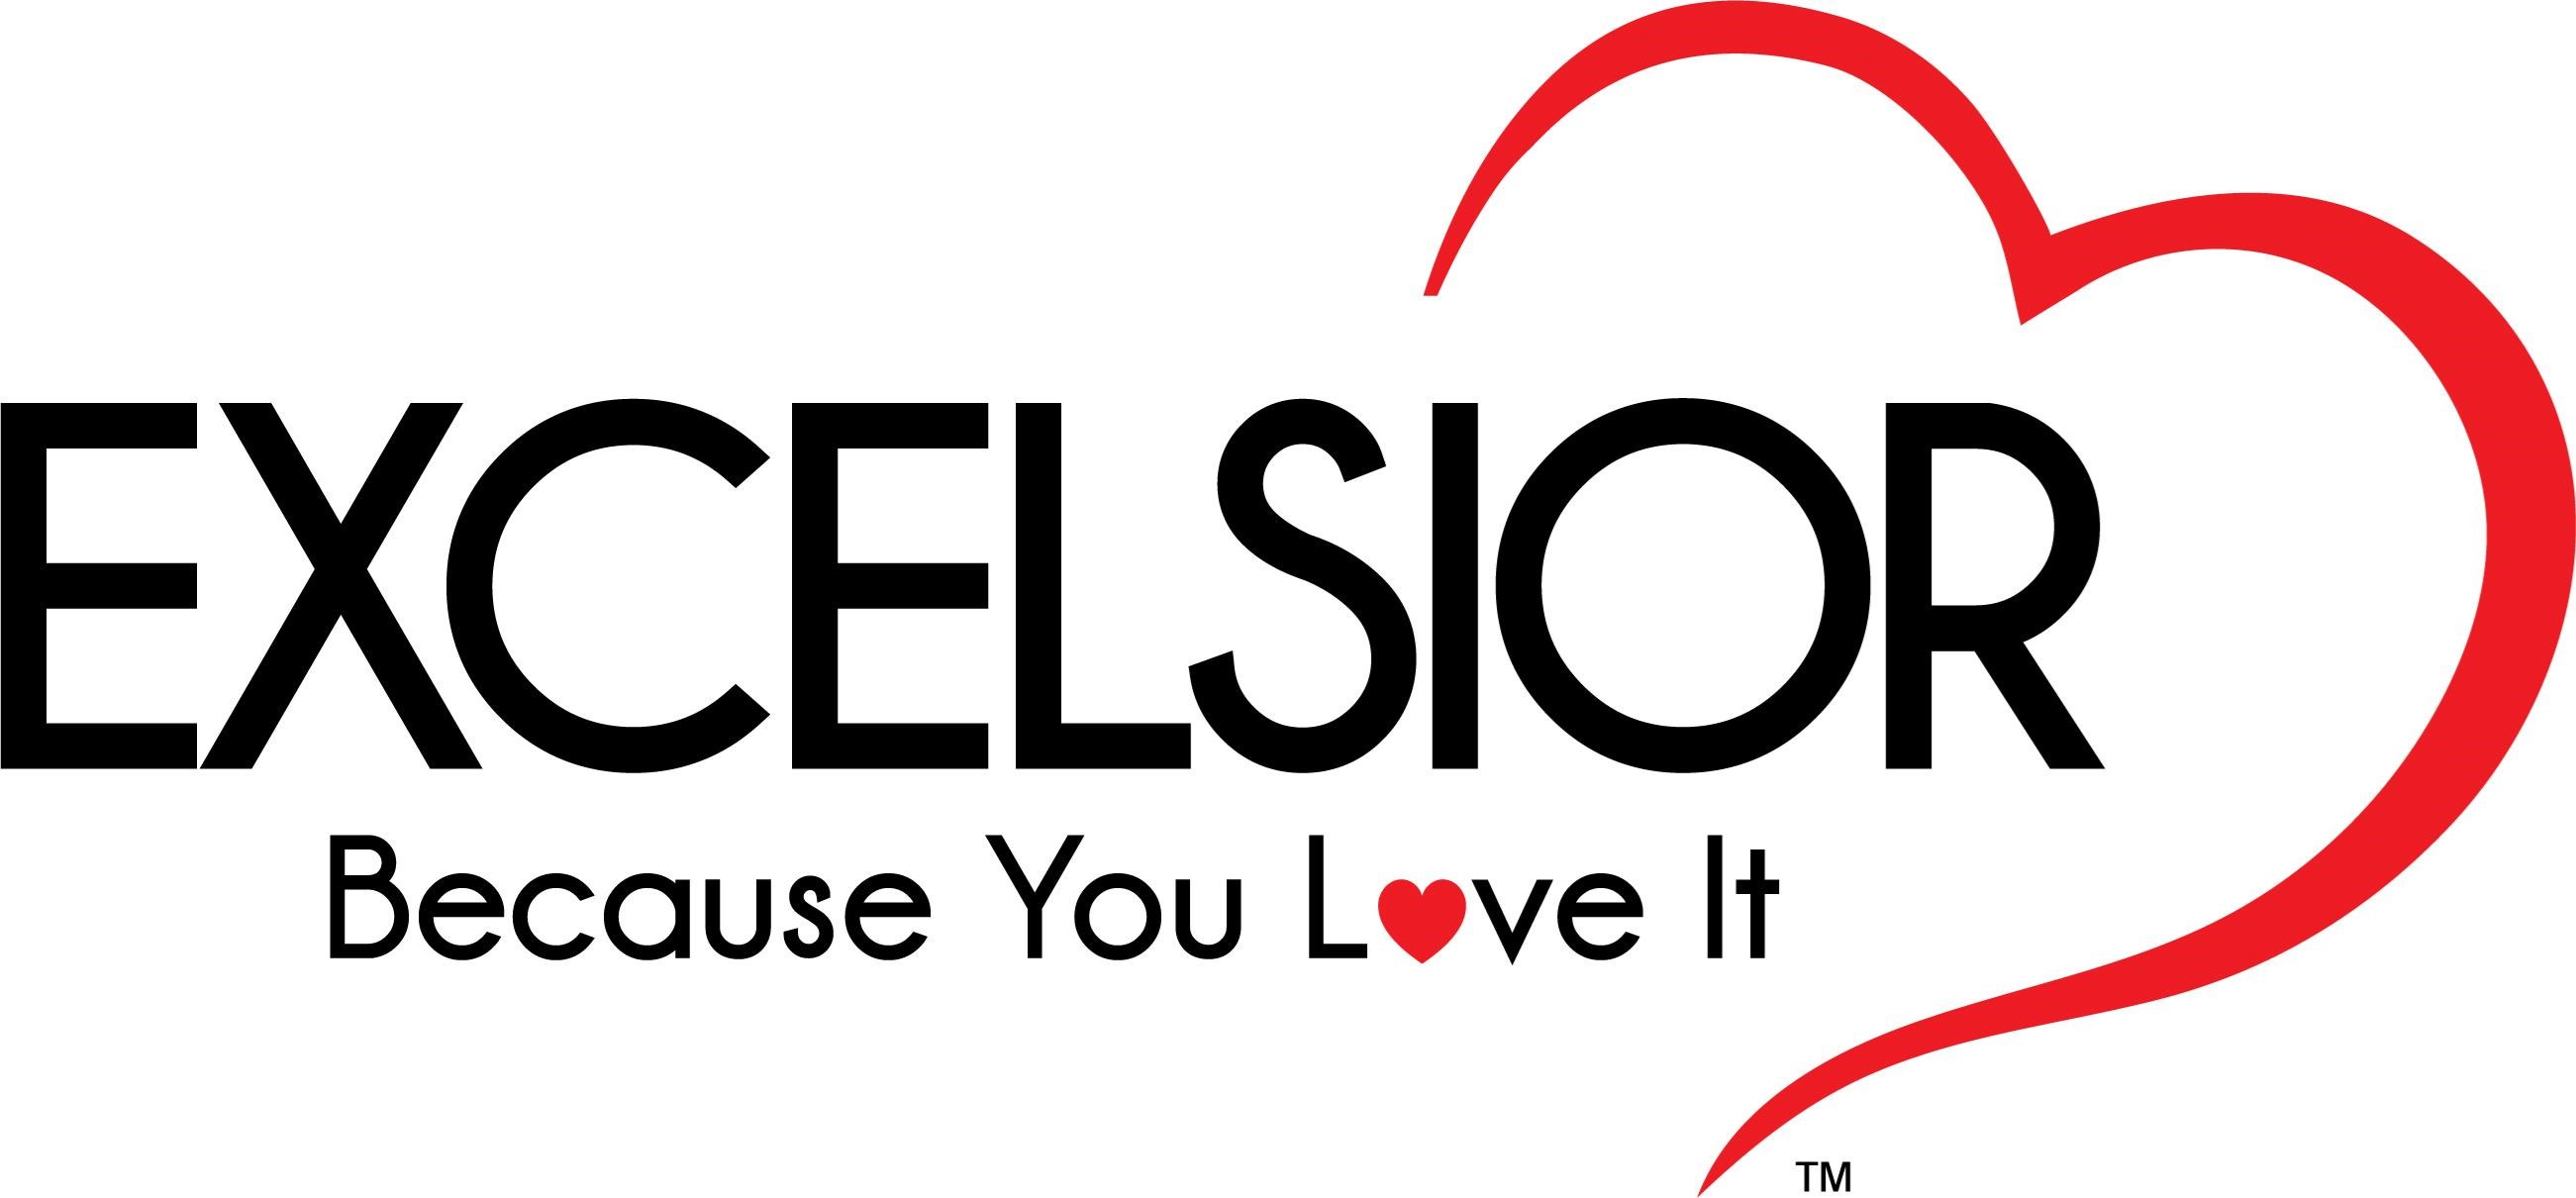 Stationary Furniture Stationary Furniture Protection $1501-$2000 by Excelsior at C. S. Wo & Sons Hawaii